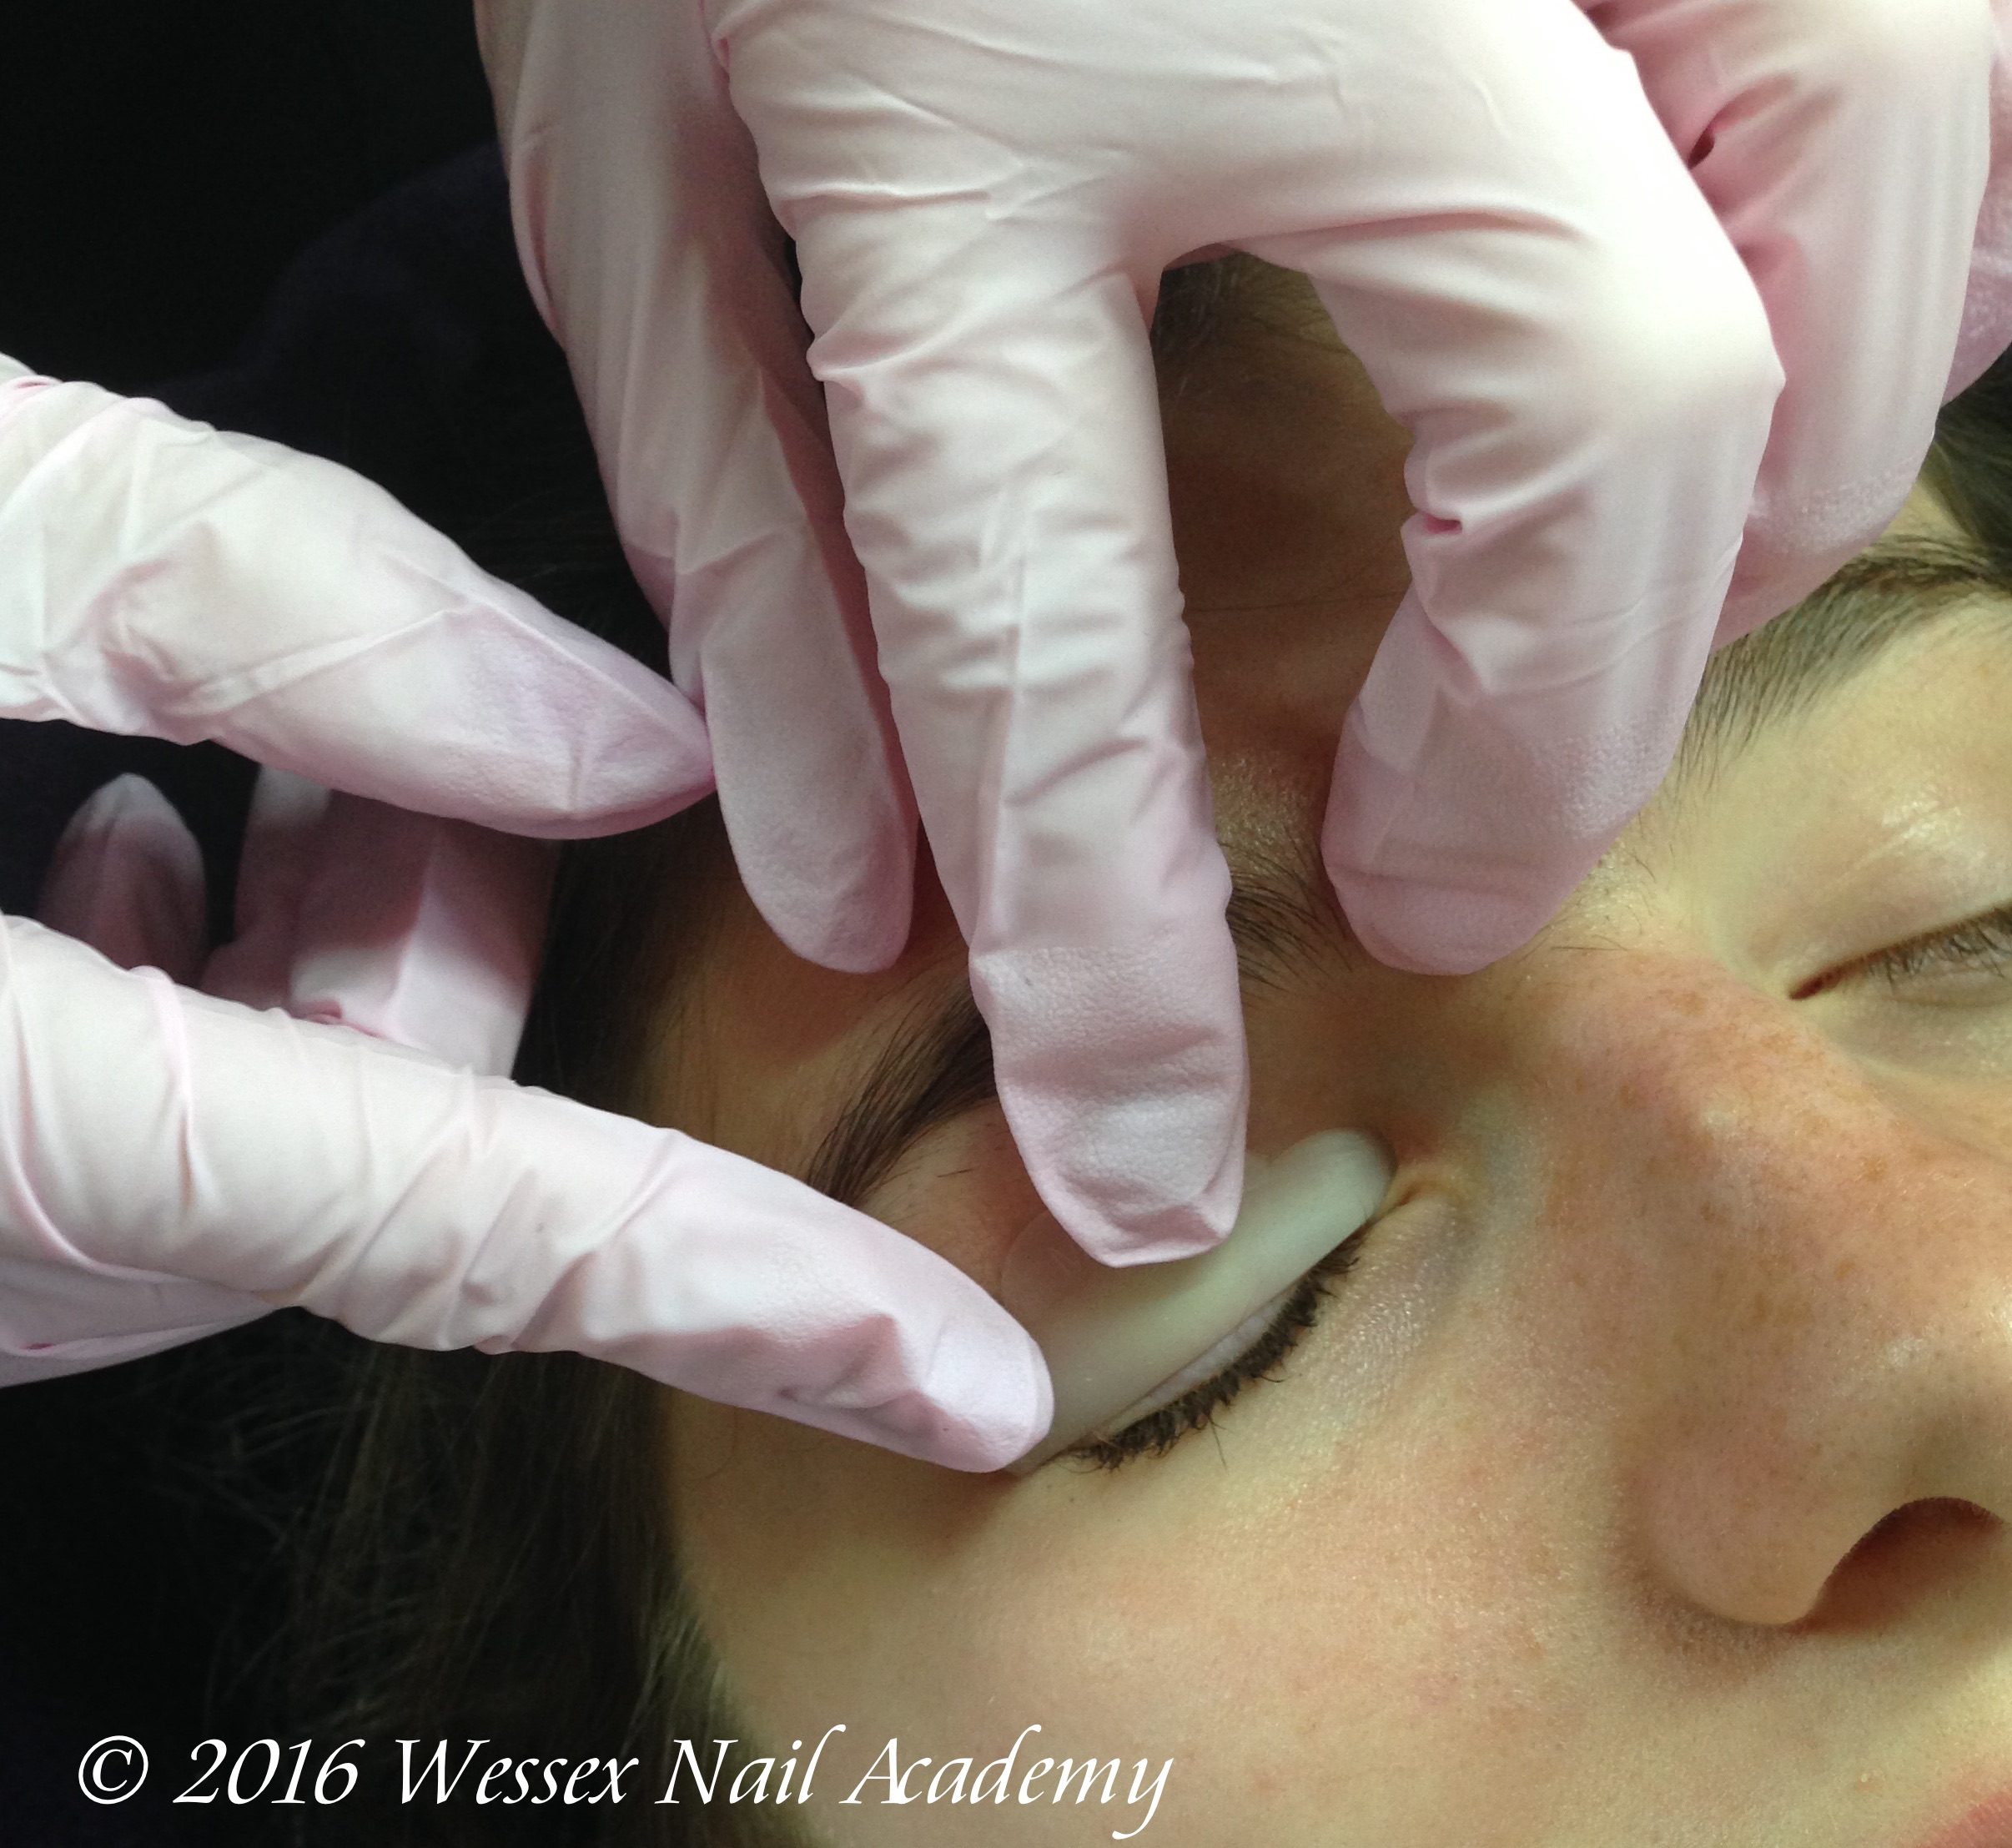 Lash Lifting and Perming Lash and Brow Tinting training course, Wessex Nail Academy Okeford Fitzpaine, Dorset